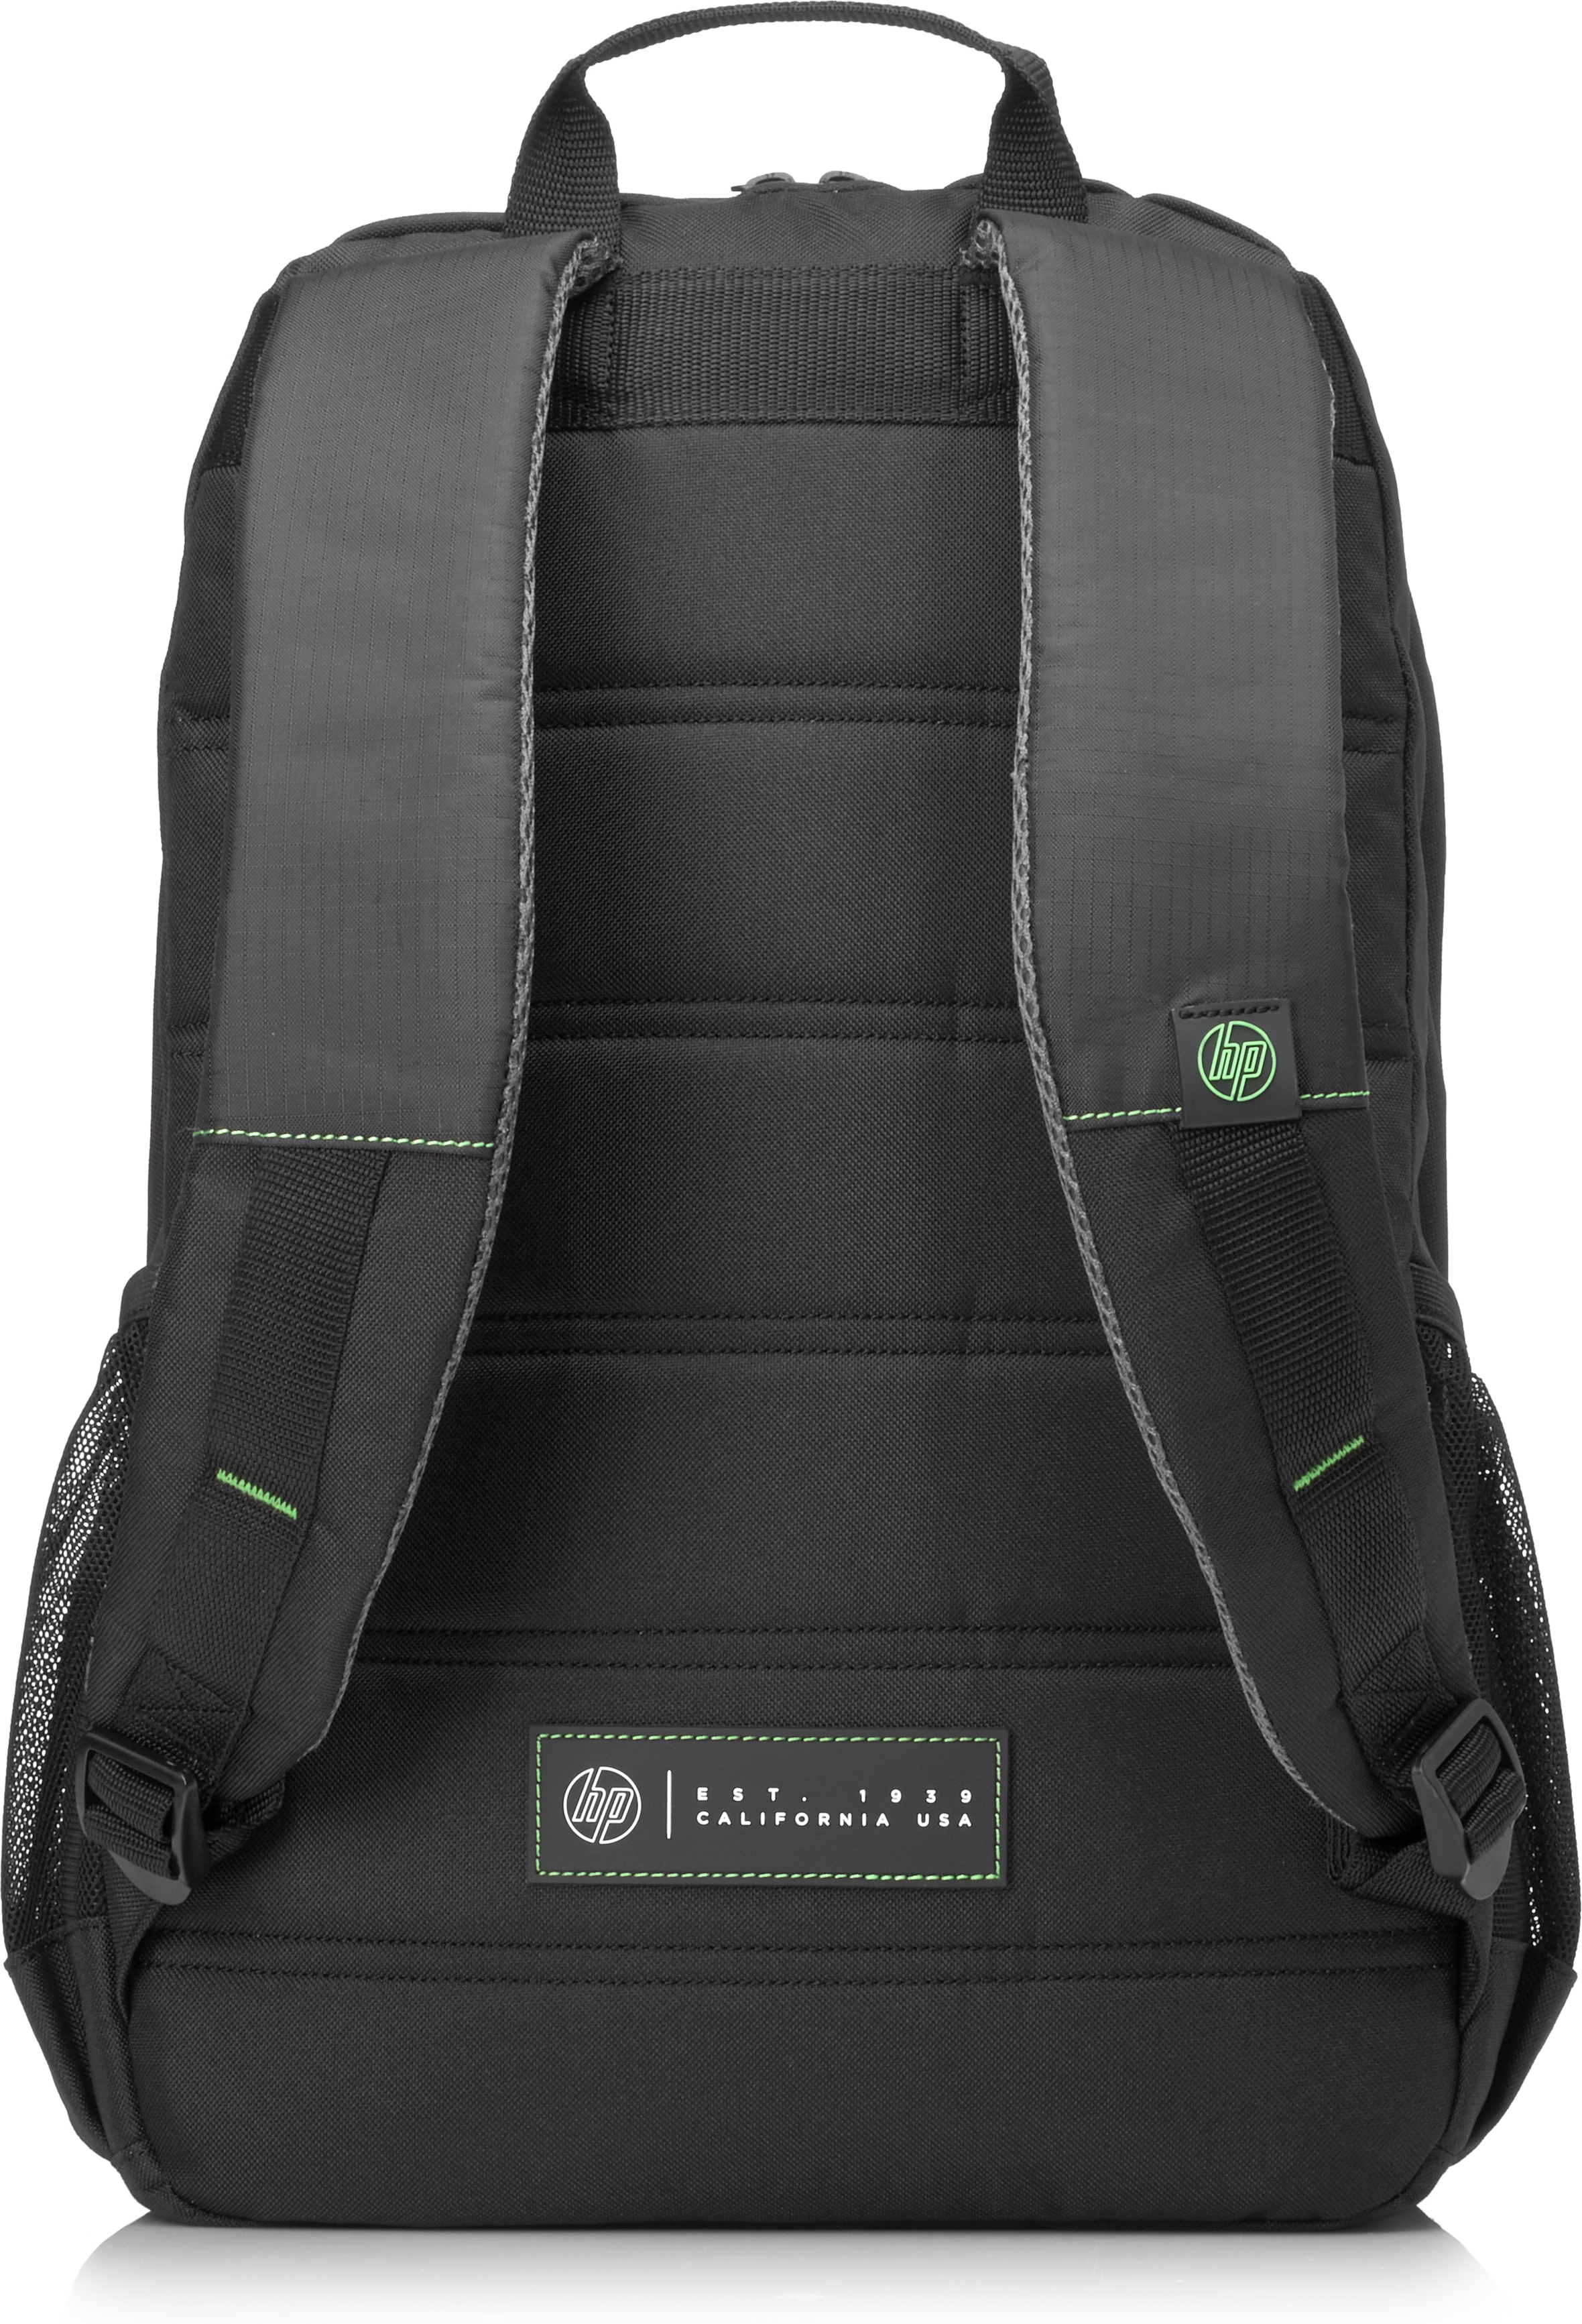 HP Active Backpack 4